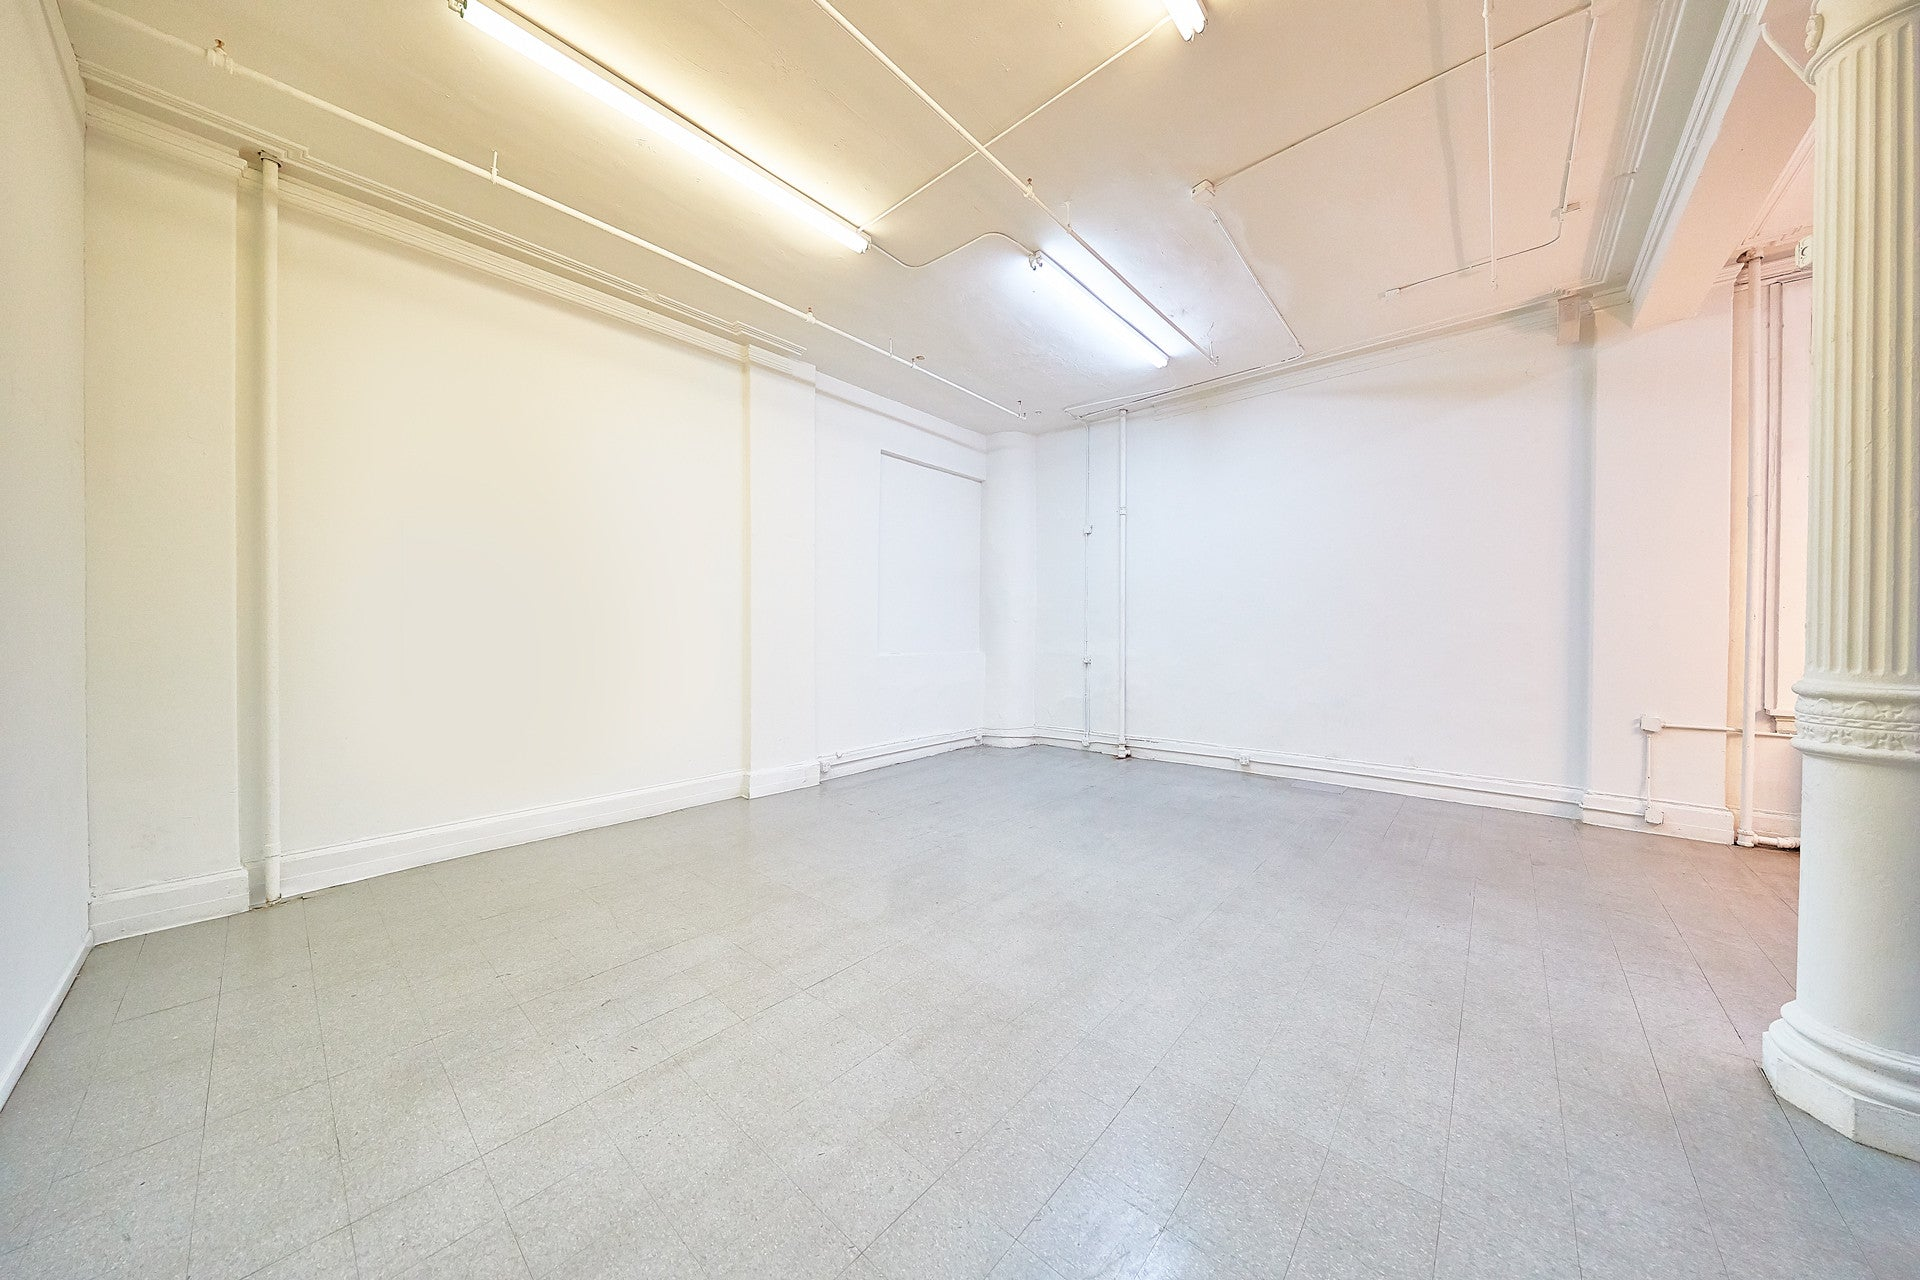 MIDTOWN SHOWROOM SPACE RENTAL